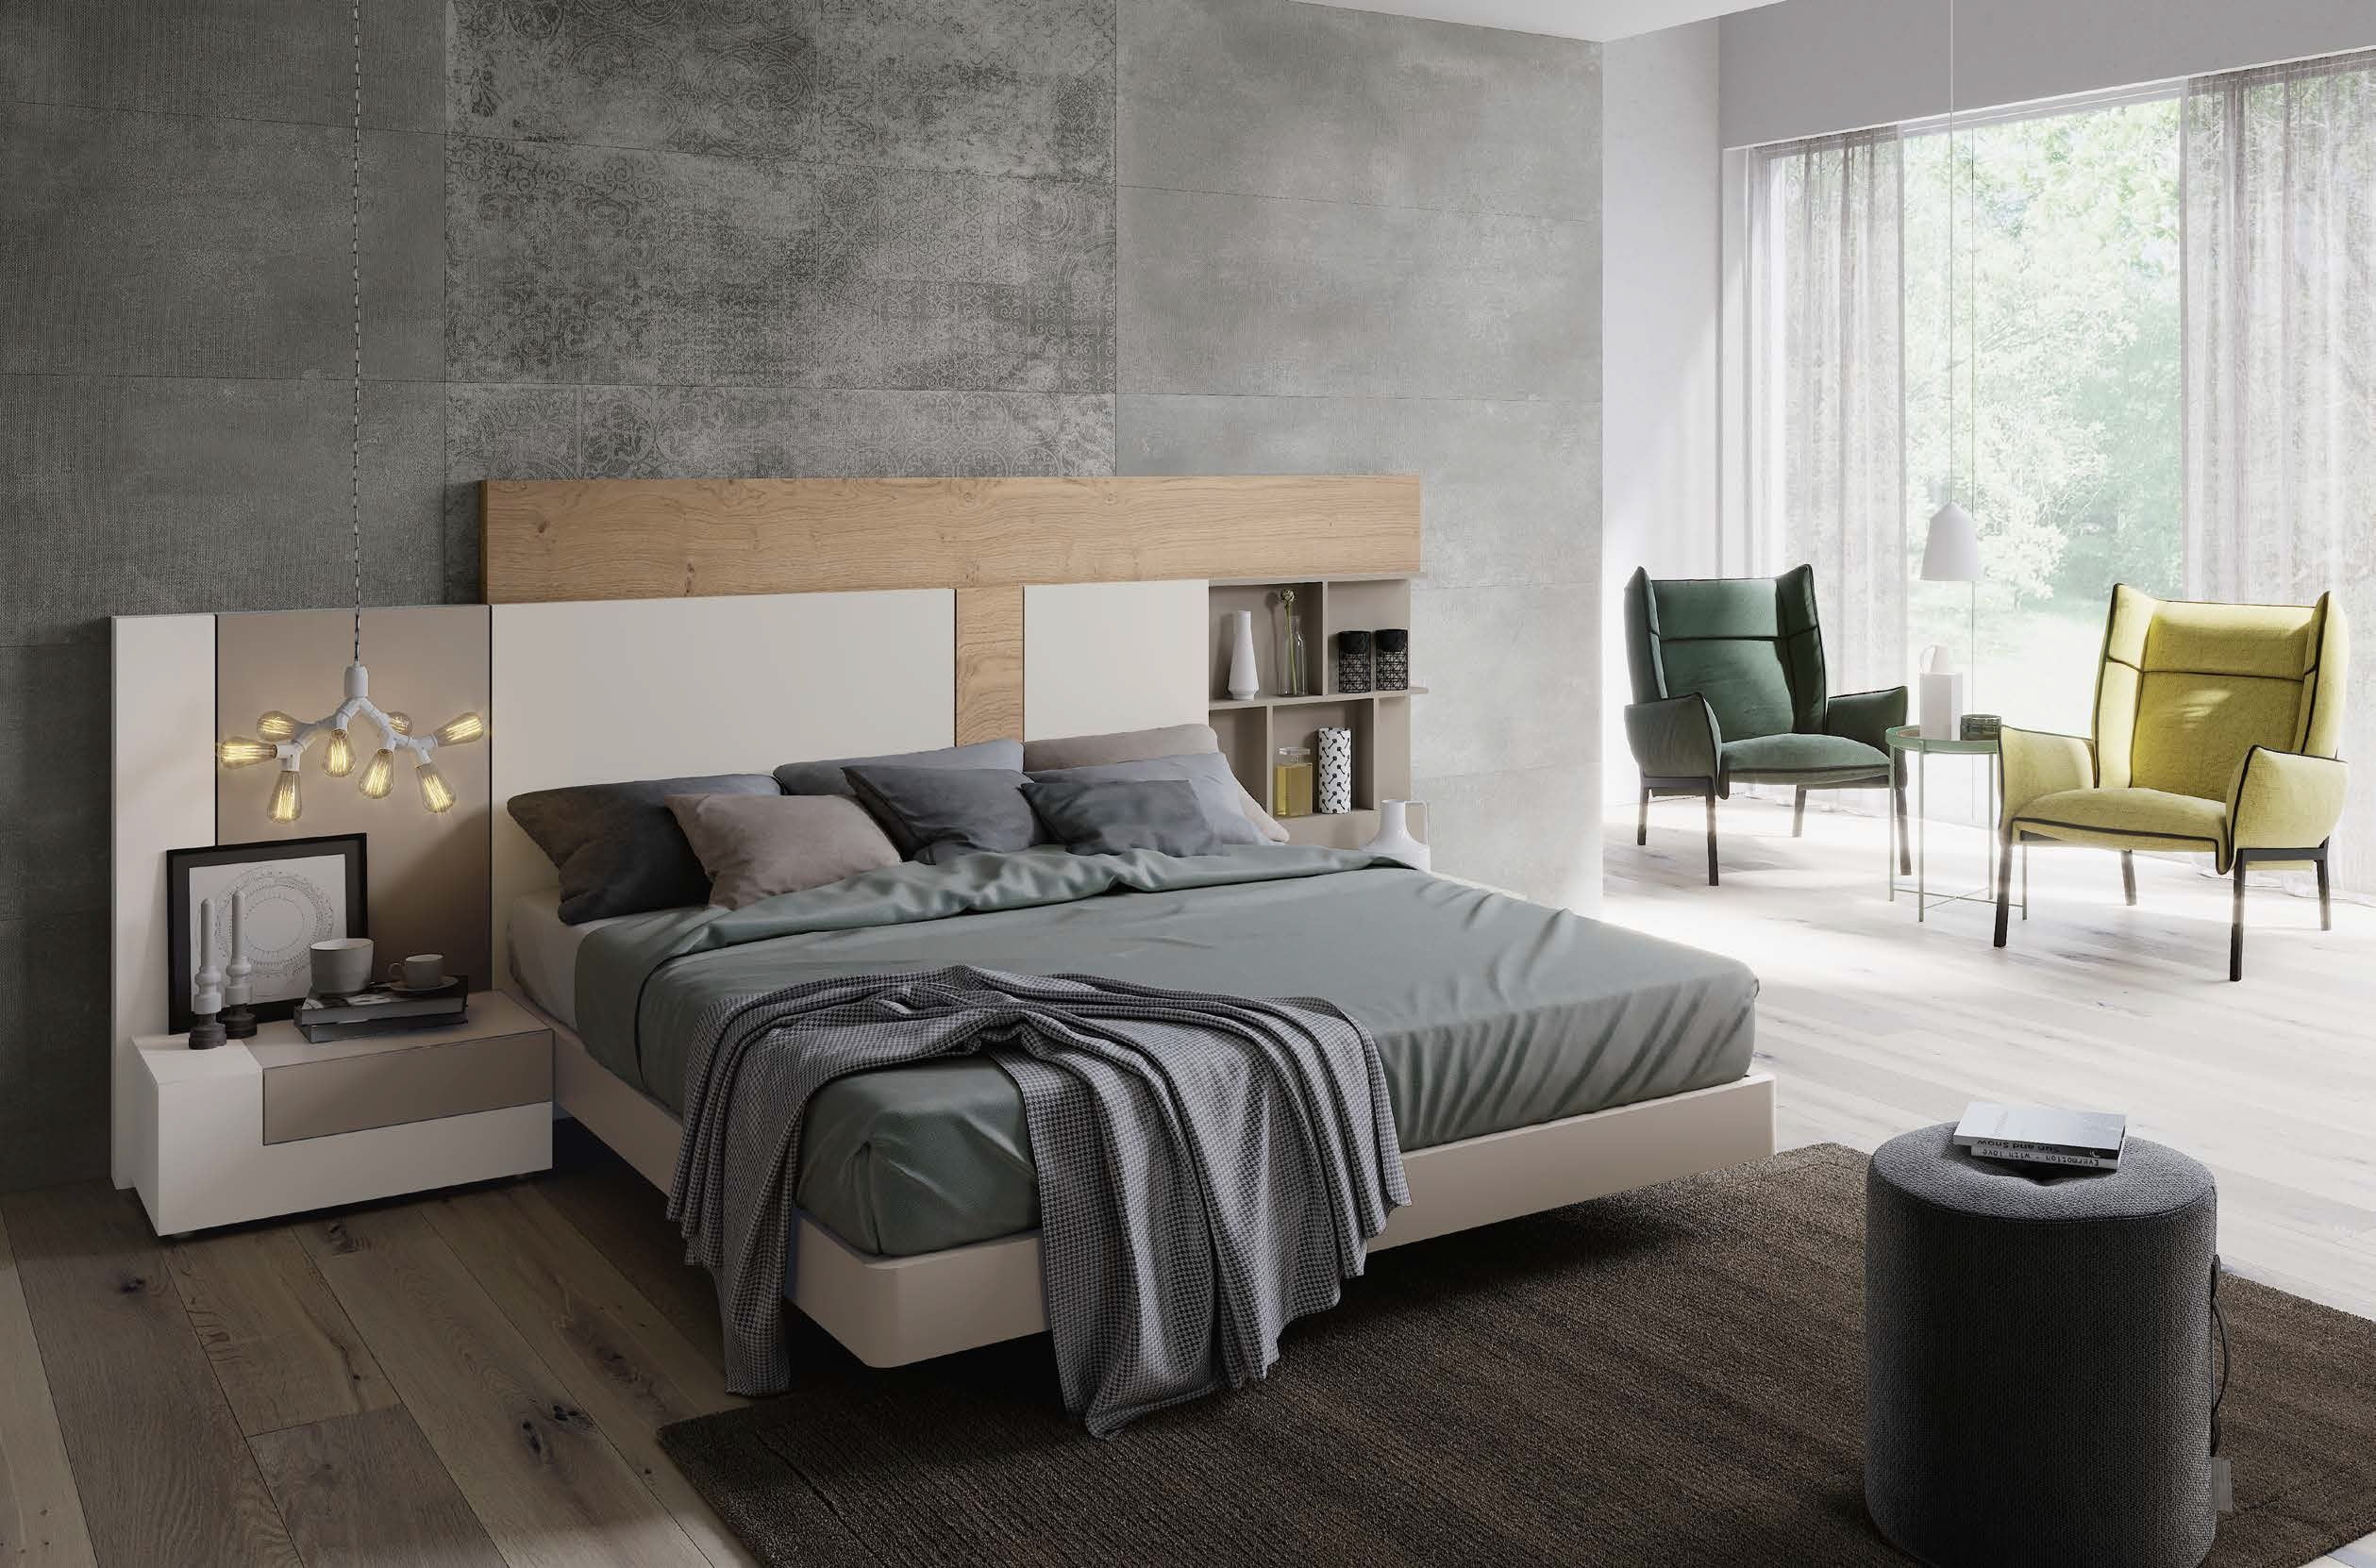 moderno-1-YOU-AND-ME-muebles-paco-caballero-633-5c9cfce103f68